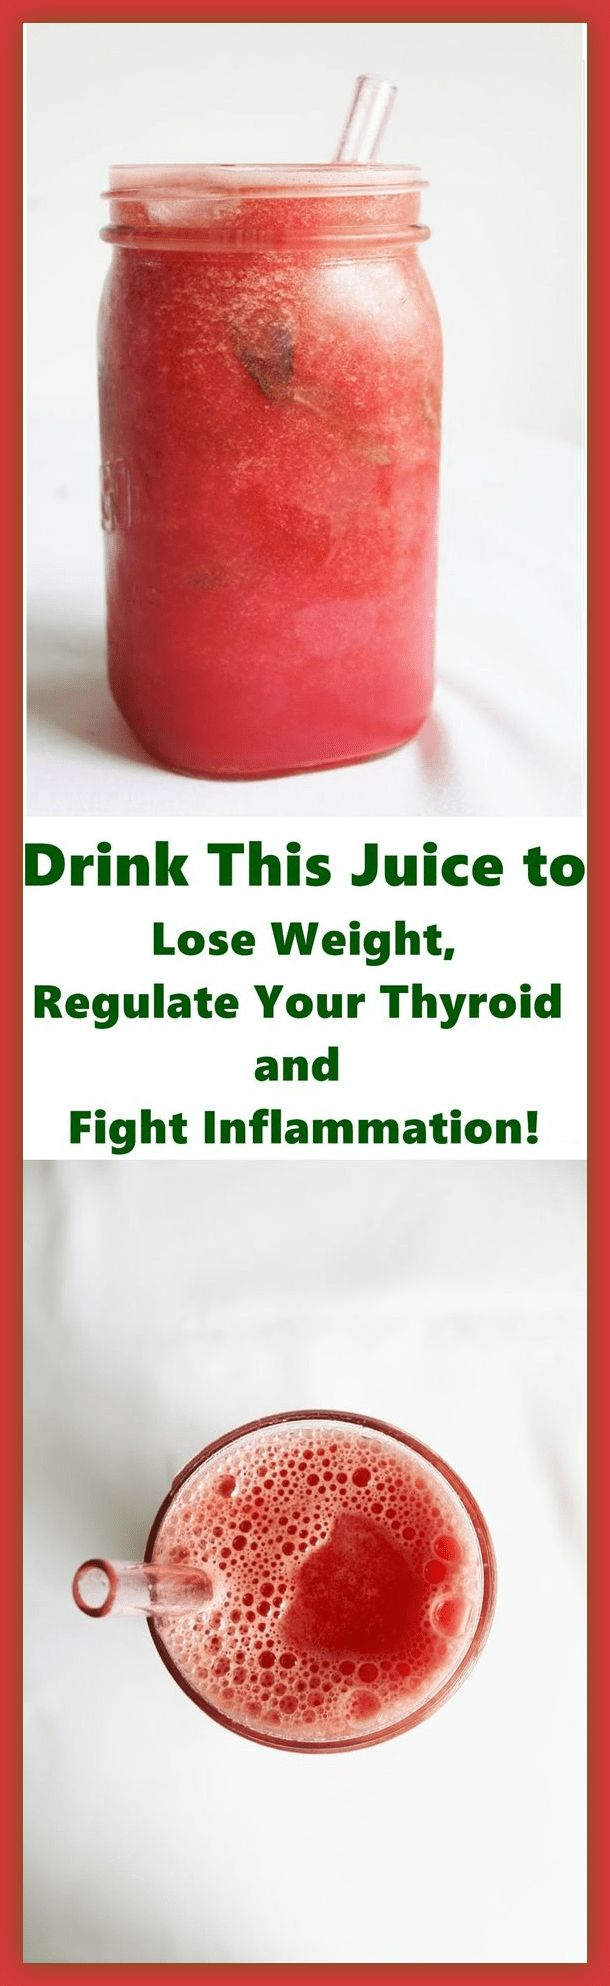 Drink This Juice to Lose Weight, Regulate Your Thyroid and Fight Inflammation! | Health Advice 365